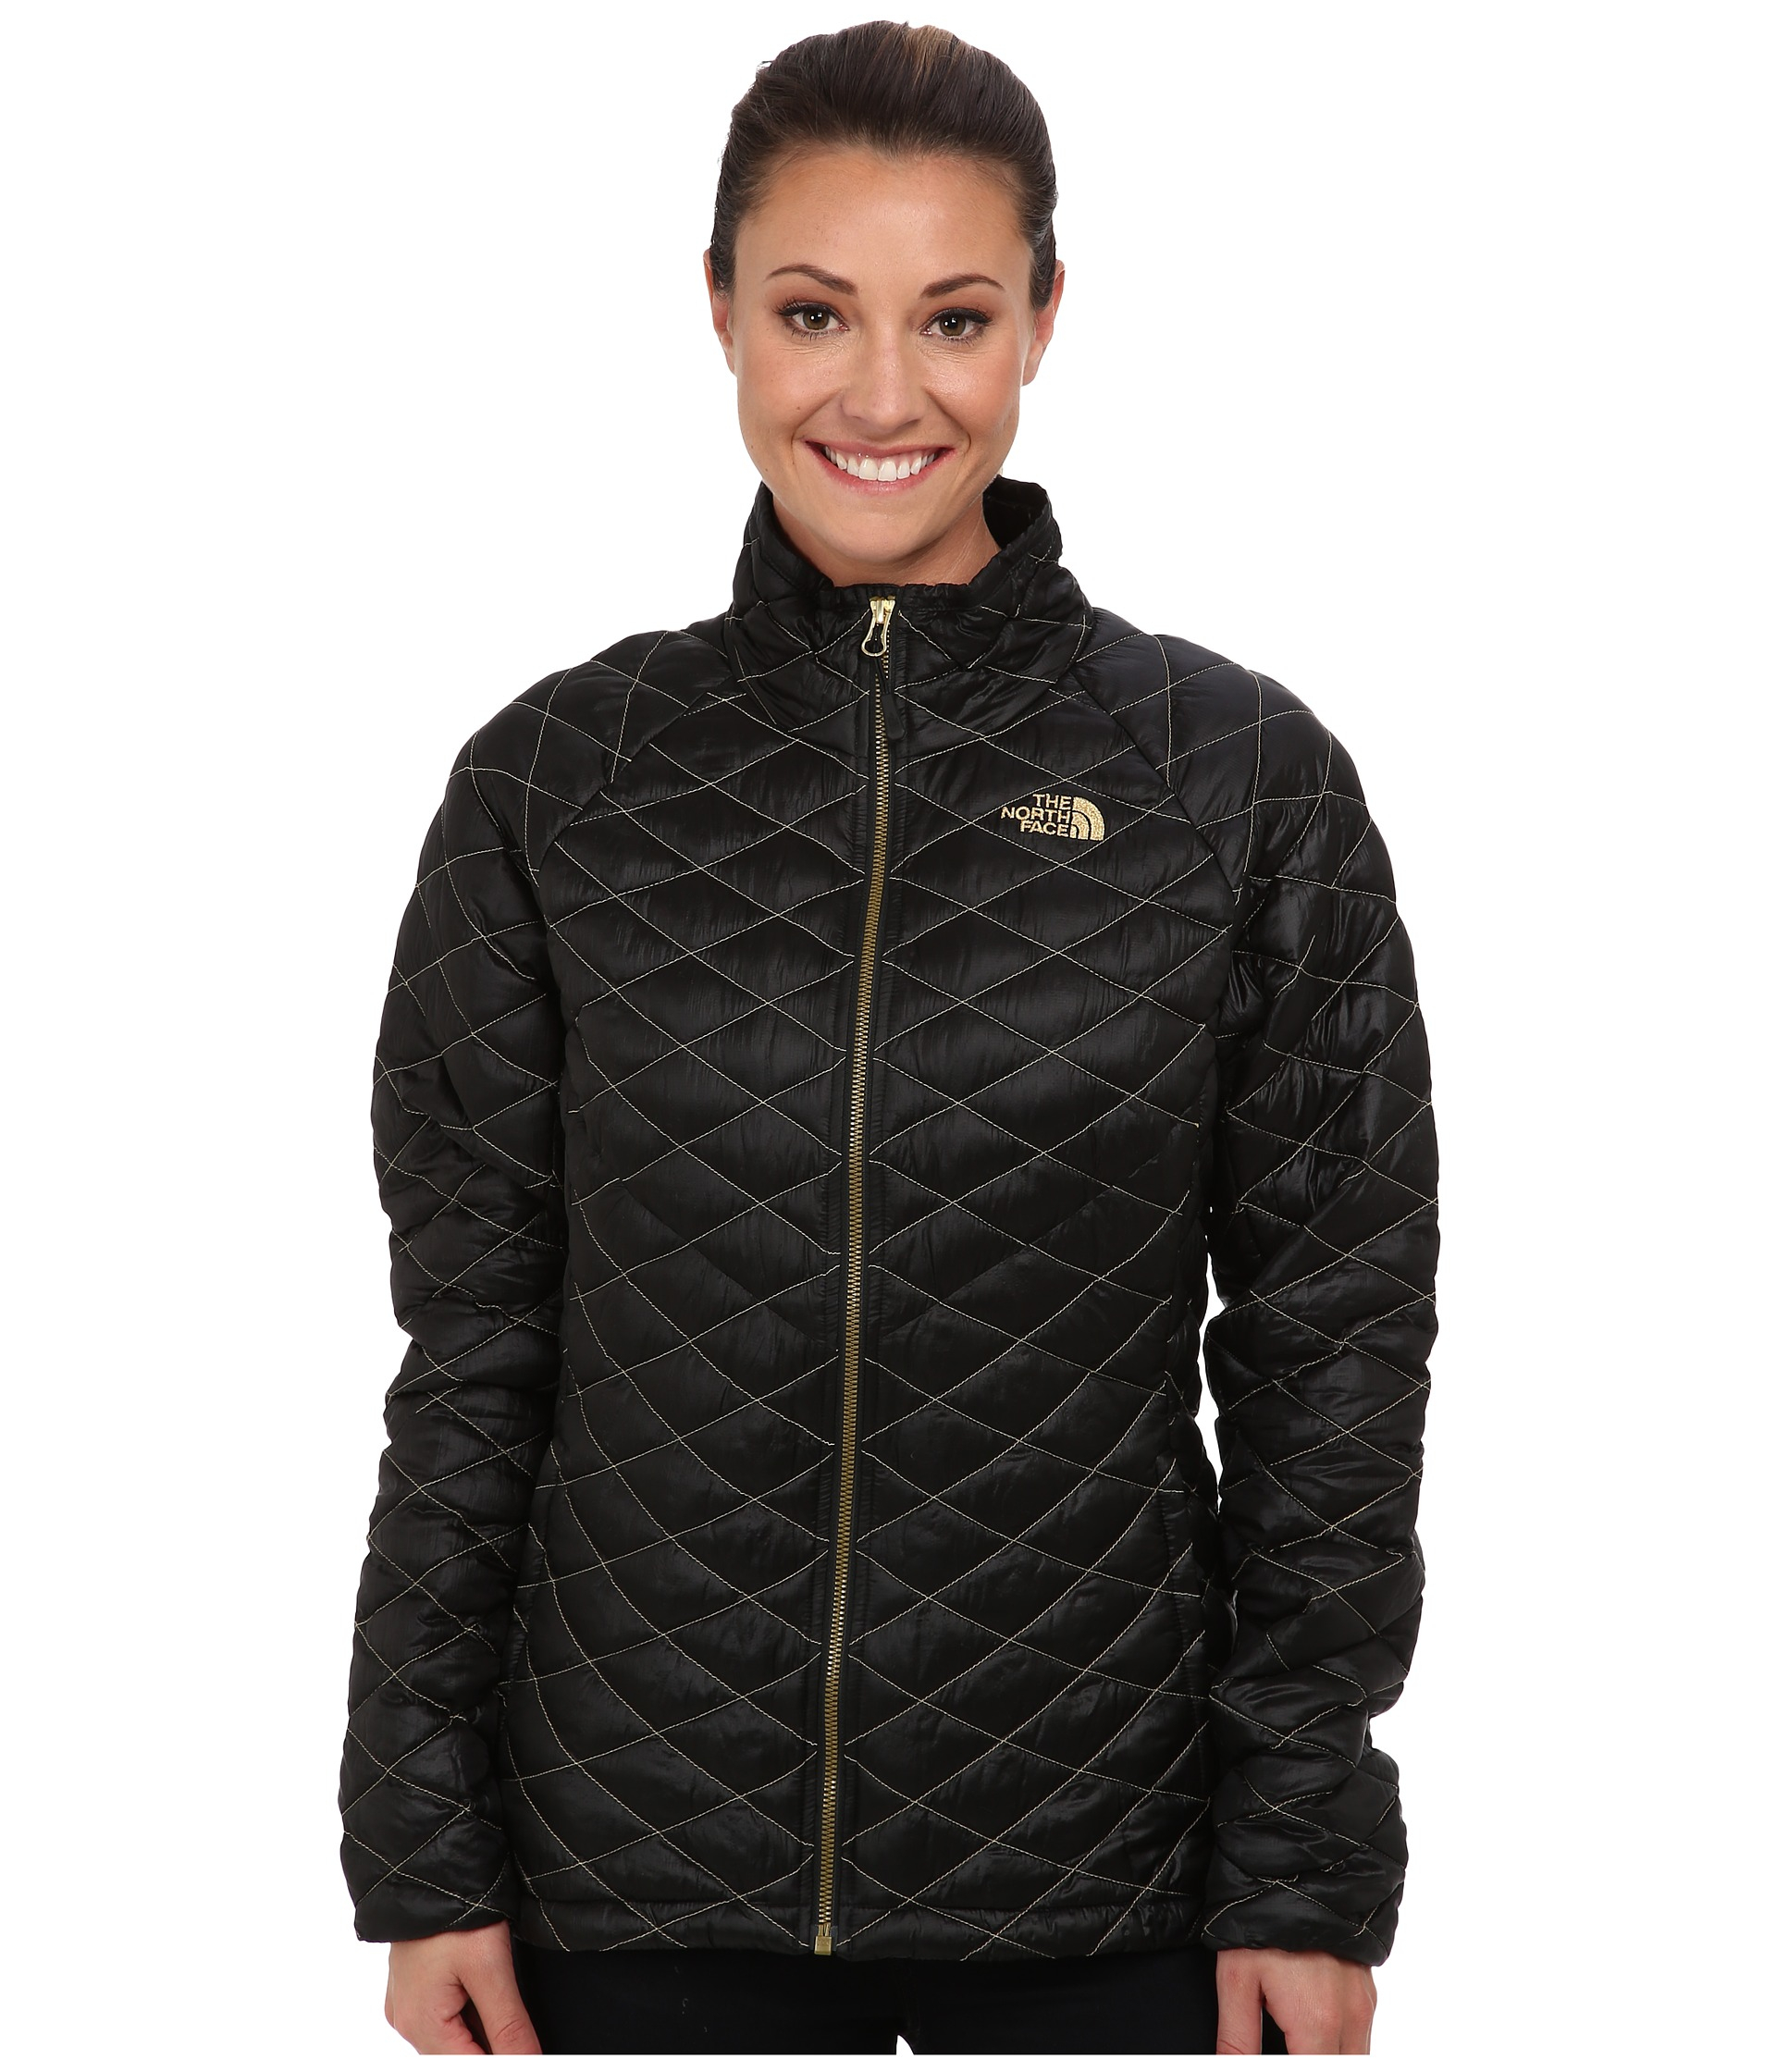 90c1285b3e0b Lyst - The North Face Thermoball™ Full Zip Jacket in Black